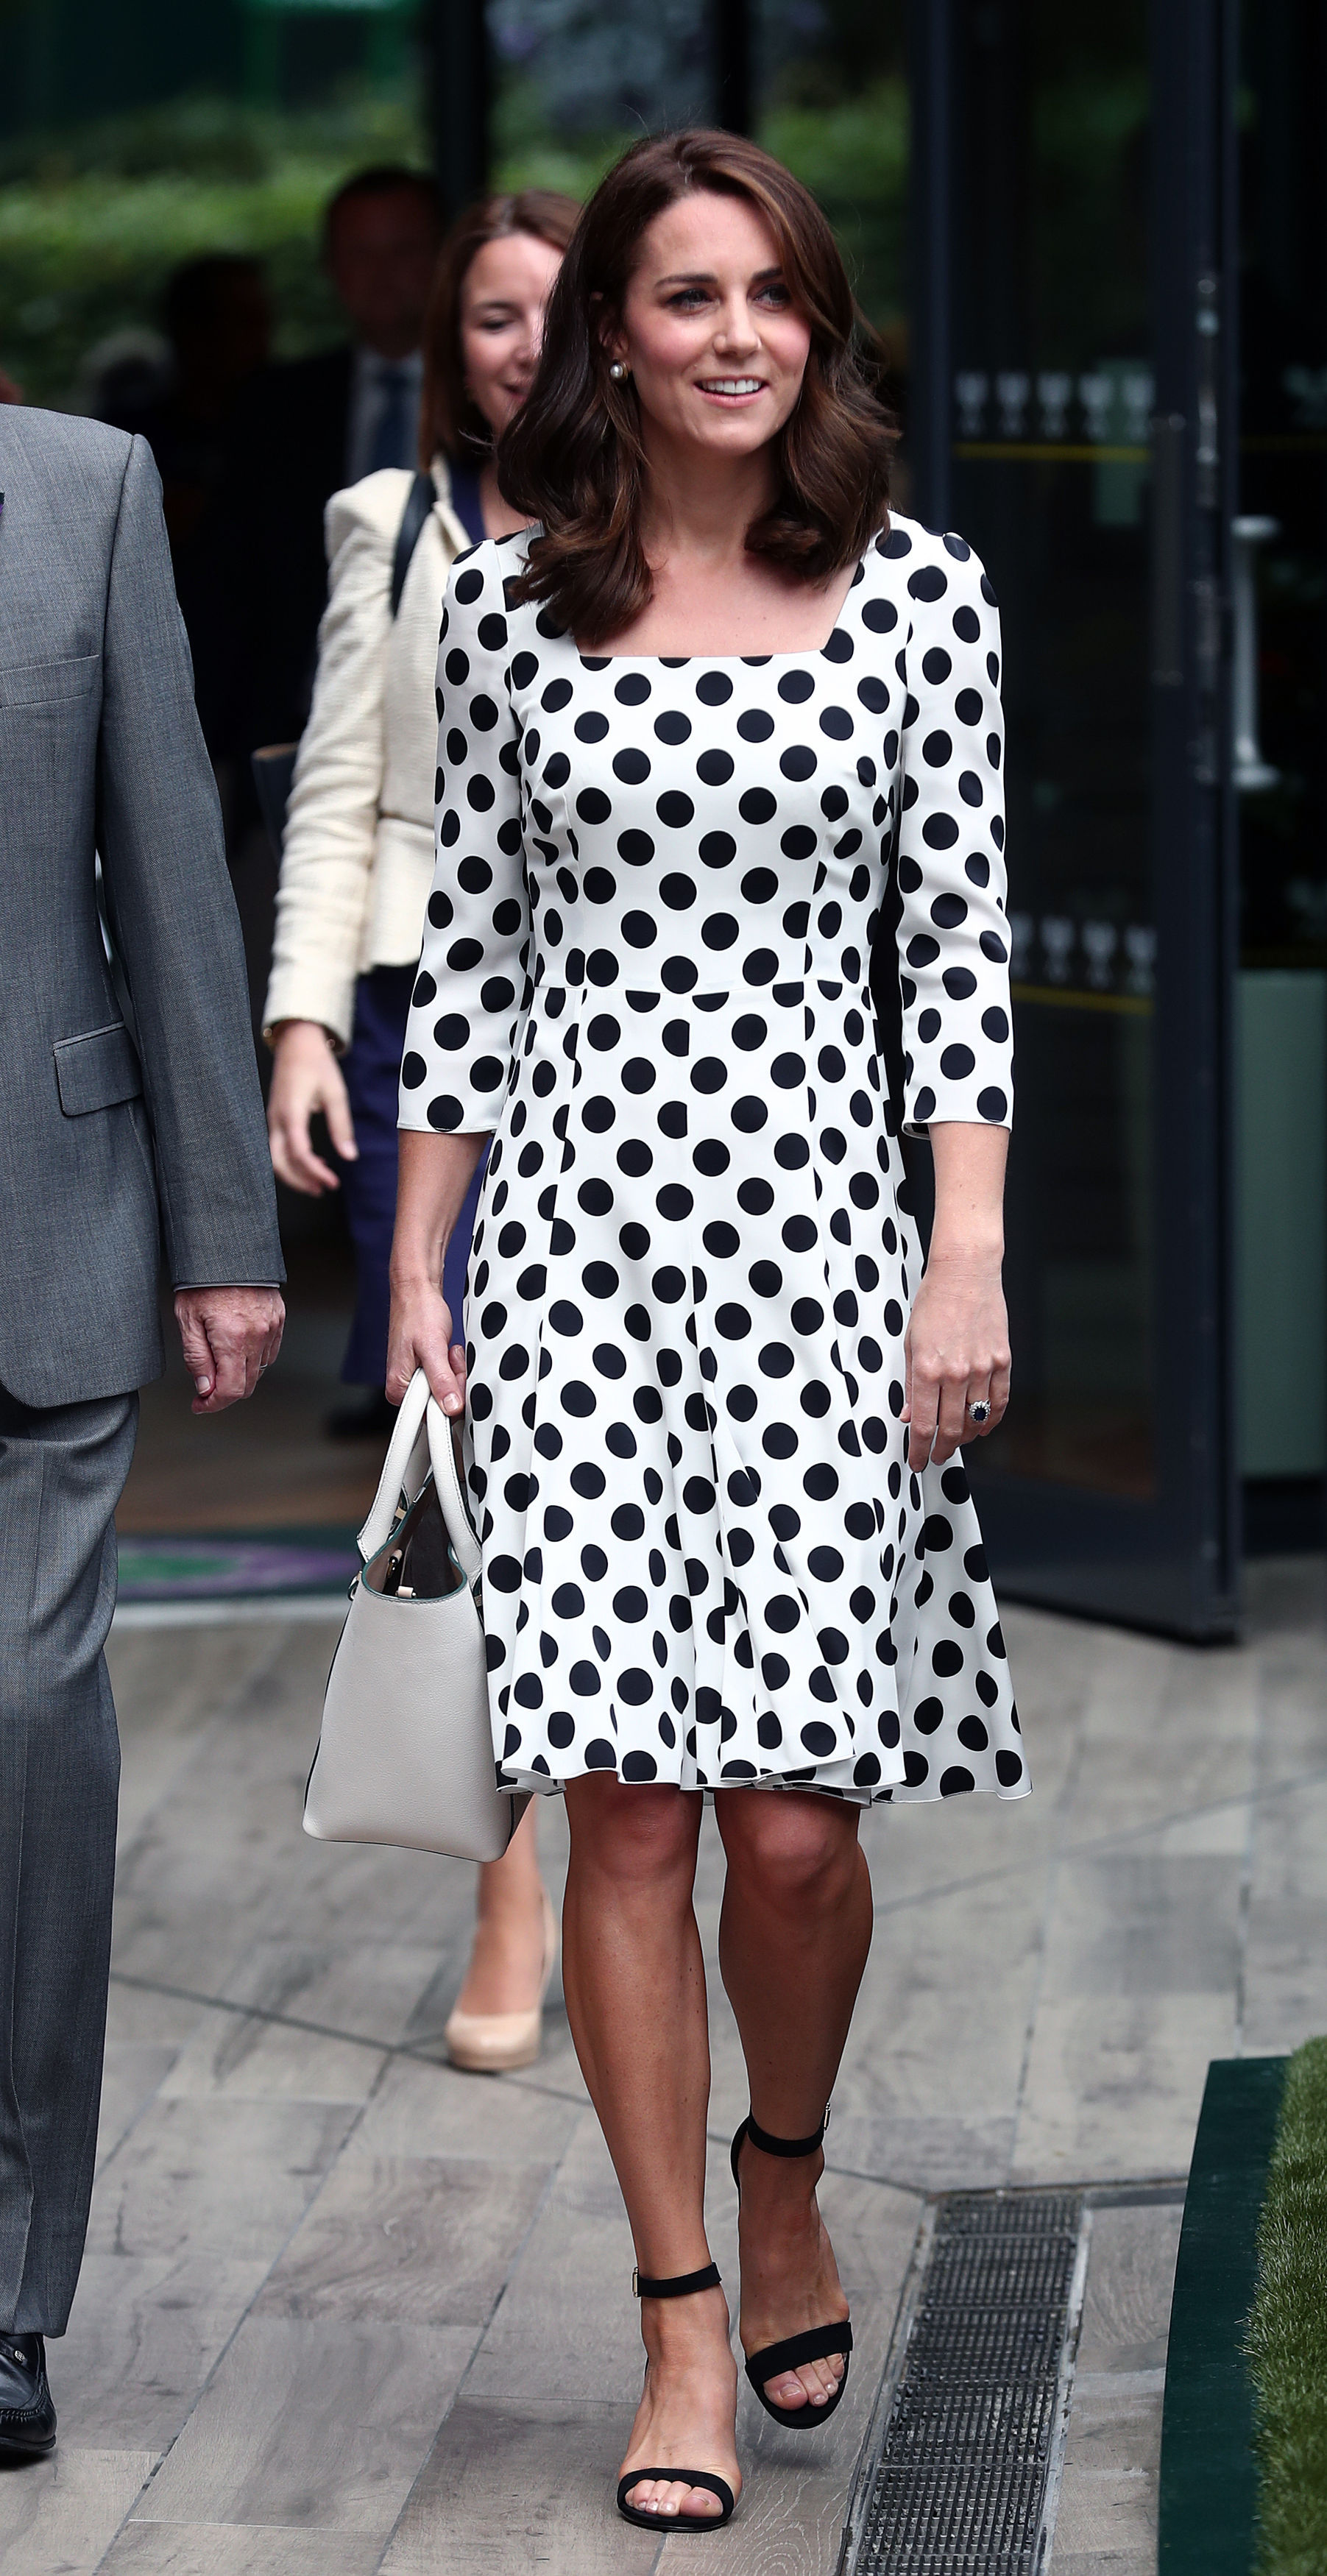 3 July 2017.  The Duchess of Cambridge, Patron of the All England Lawn Tennis and Croquet Club (AELTC) on day one of the Wimbledon Championships at The All England Lawn Tennis and Croquet Club, Wimbledon. RESTRICTIONS: Editorial use only. No commercial use without prior written consent of the AELTC. Still image use only - no moving images to emulate broadcast. No superimposing or removal of sponsor/ad logos., Image: 340353962, License: Rights-managed, Restrictions: **No UK Sales Until 28 Days After Create Date**  **Editorial Use Only**, Model Release: no, Credit line: Profimedia, Goff Photos